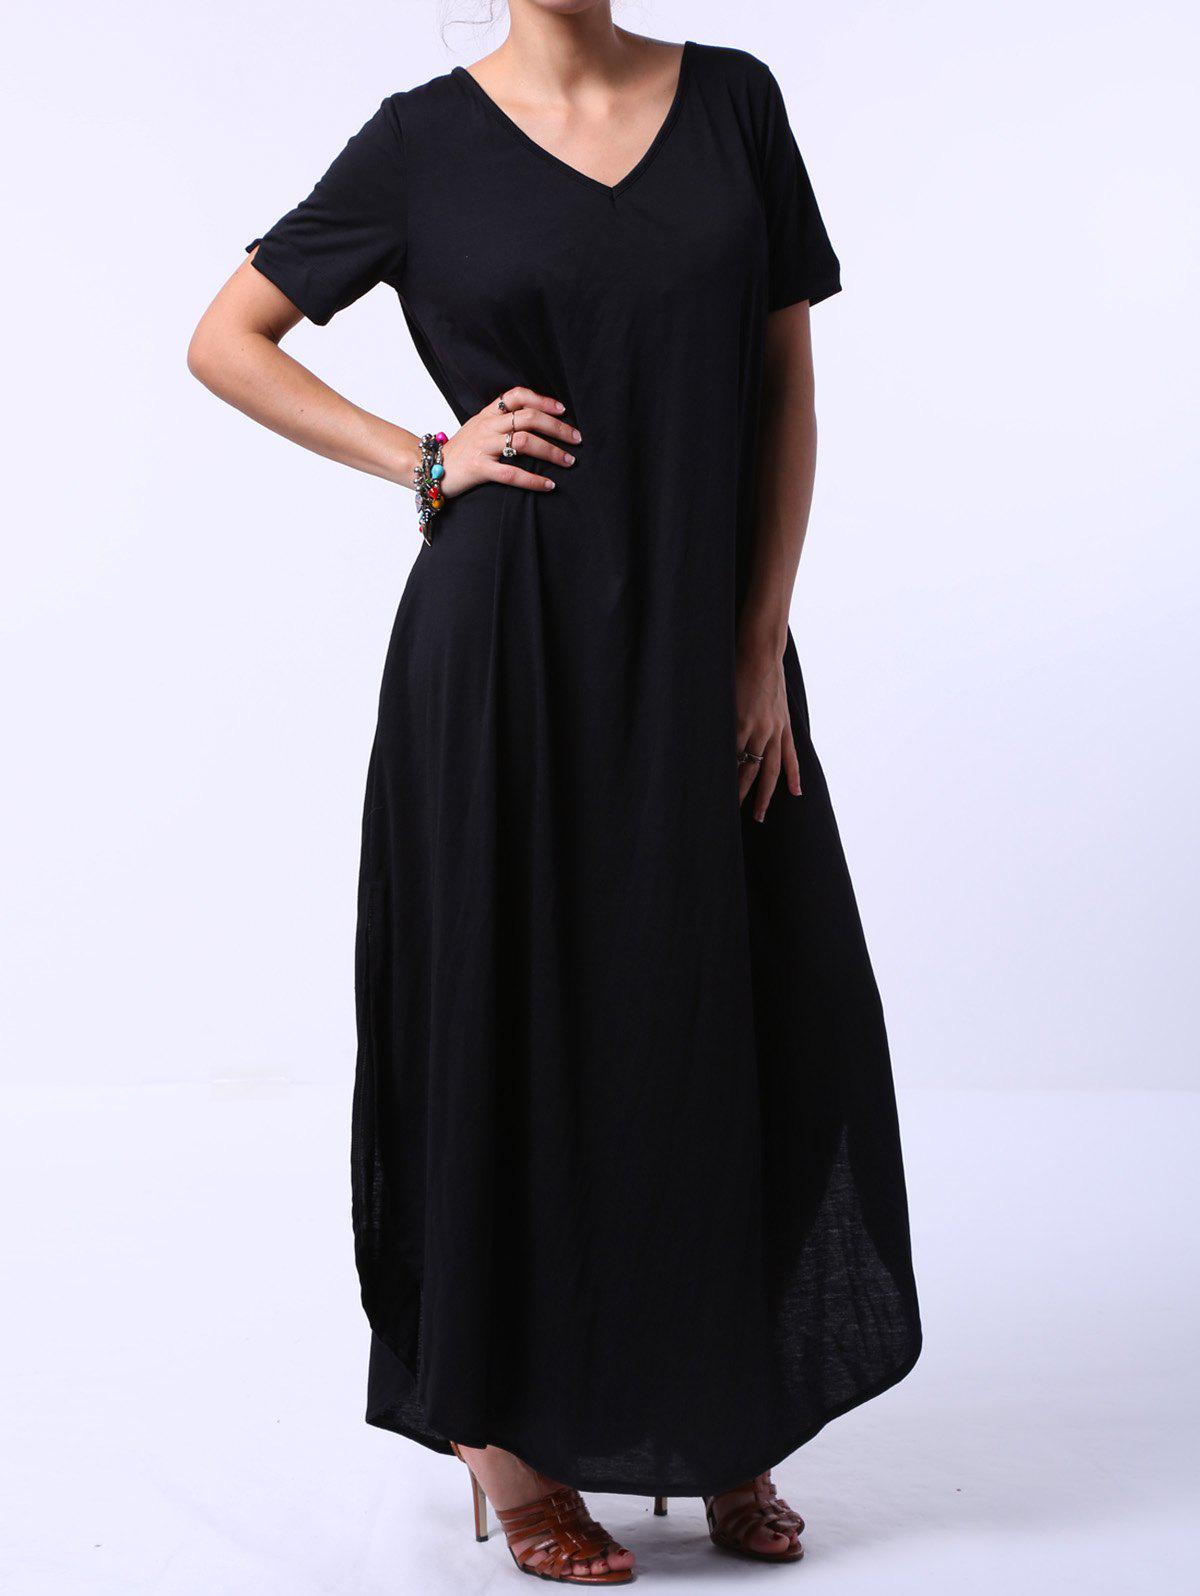 Stylish Women's V-Neck Short Sleeve Solid Color Maxi Dress - BLACK M